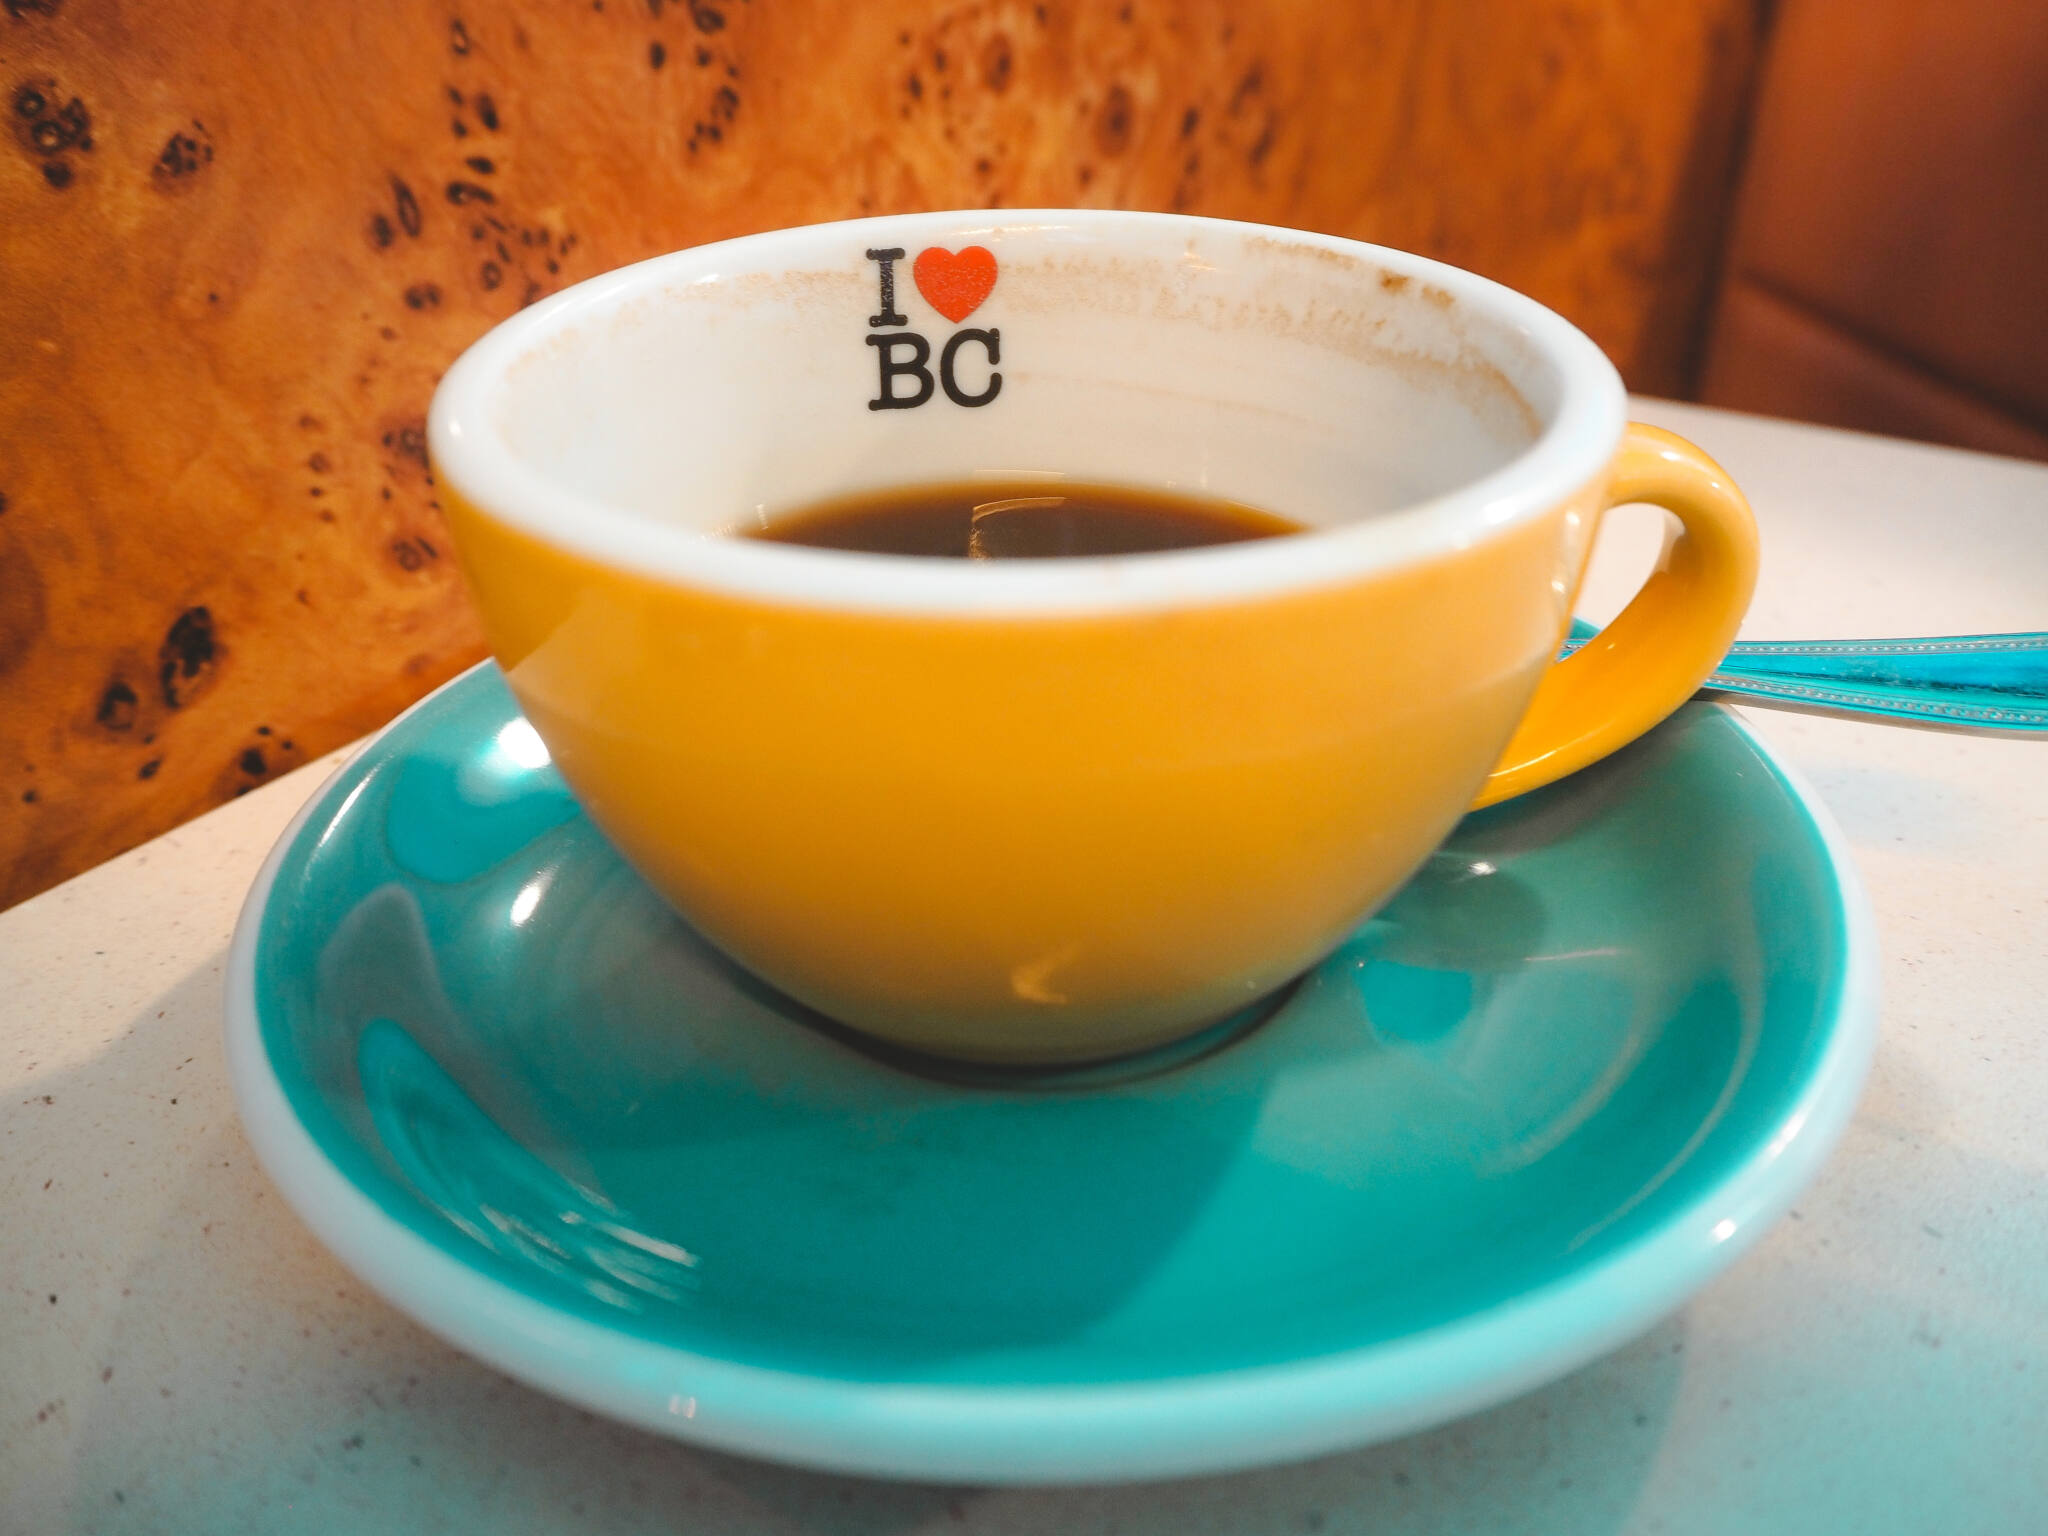 Yellow cup filled with black coffee and I Heart BC inside on blue saucer